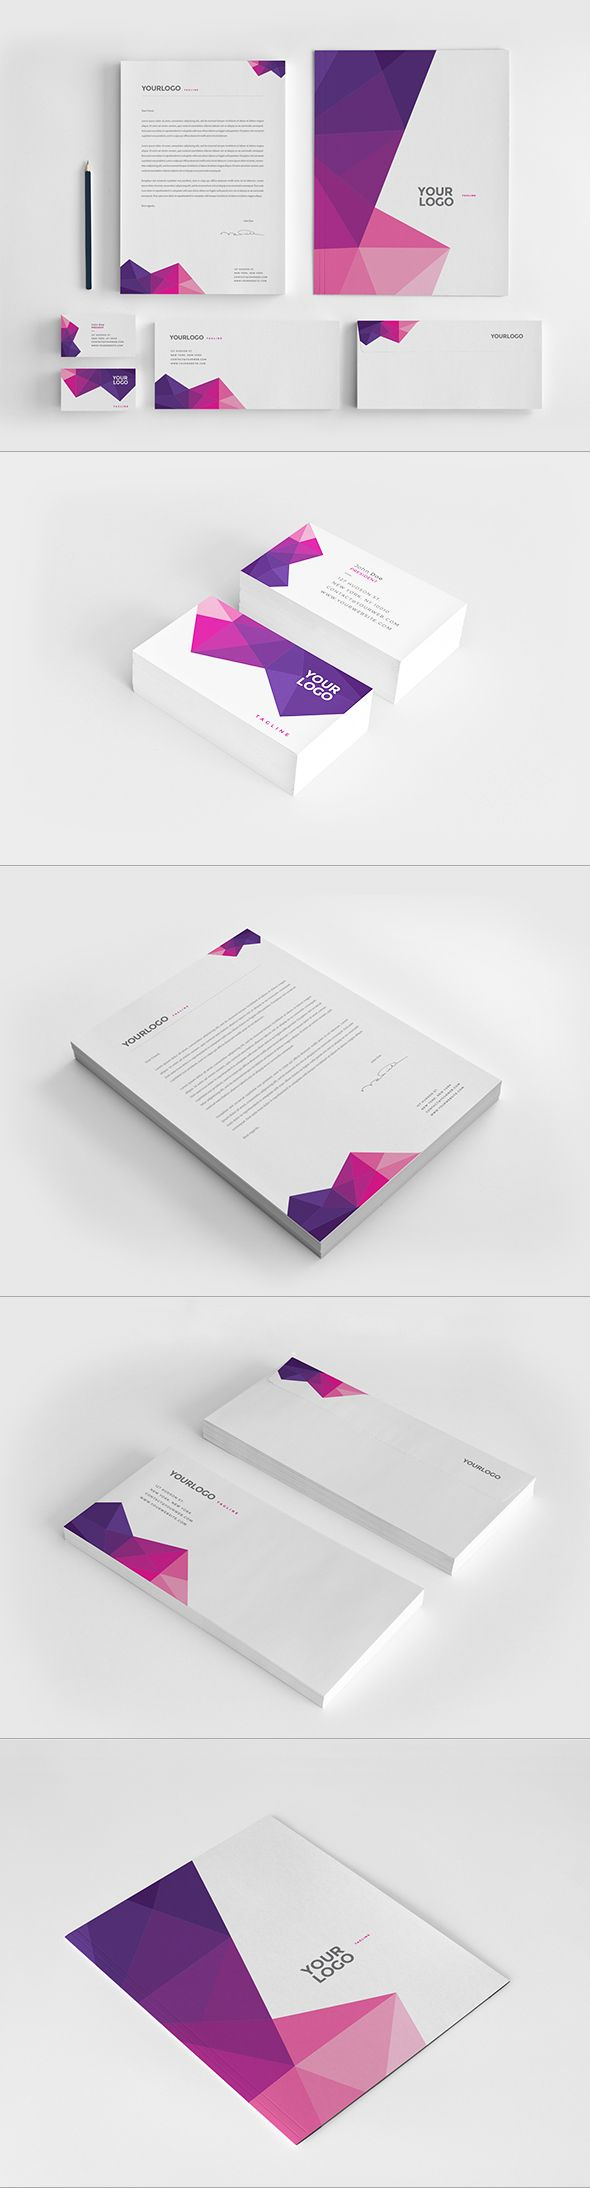 Clean Pink Pattern Stationery. Download here: http://graphicriver.net/item/clean-pink-pattern-stationery/12249044?ref=abradesign